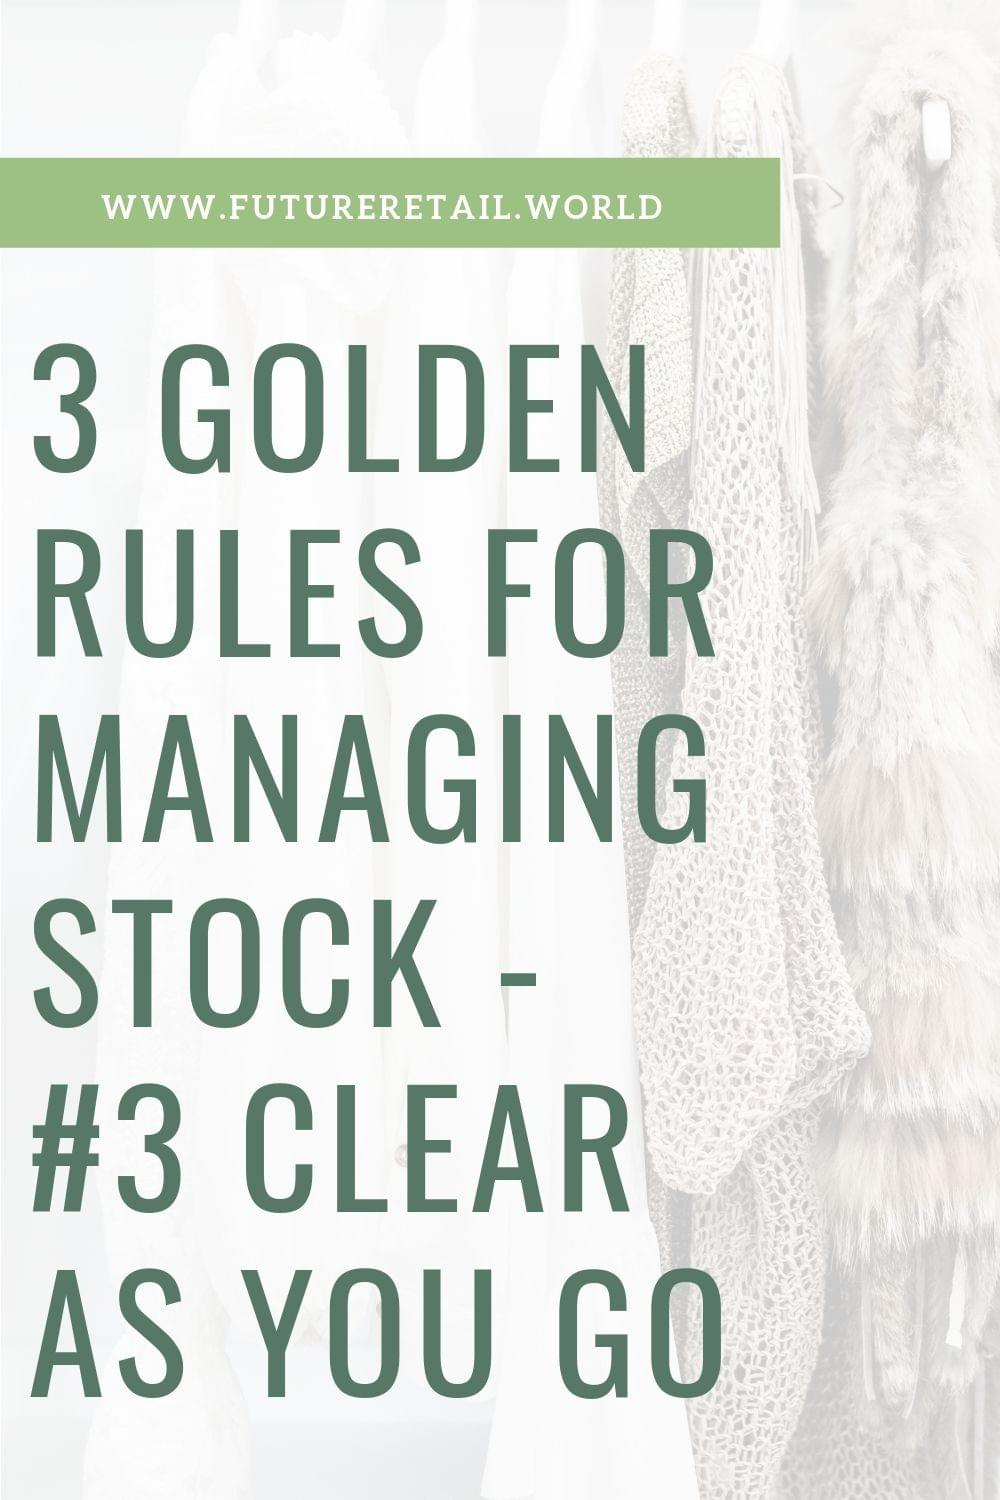 The Golden Rules of Managing Stock - Part 3 - Blog